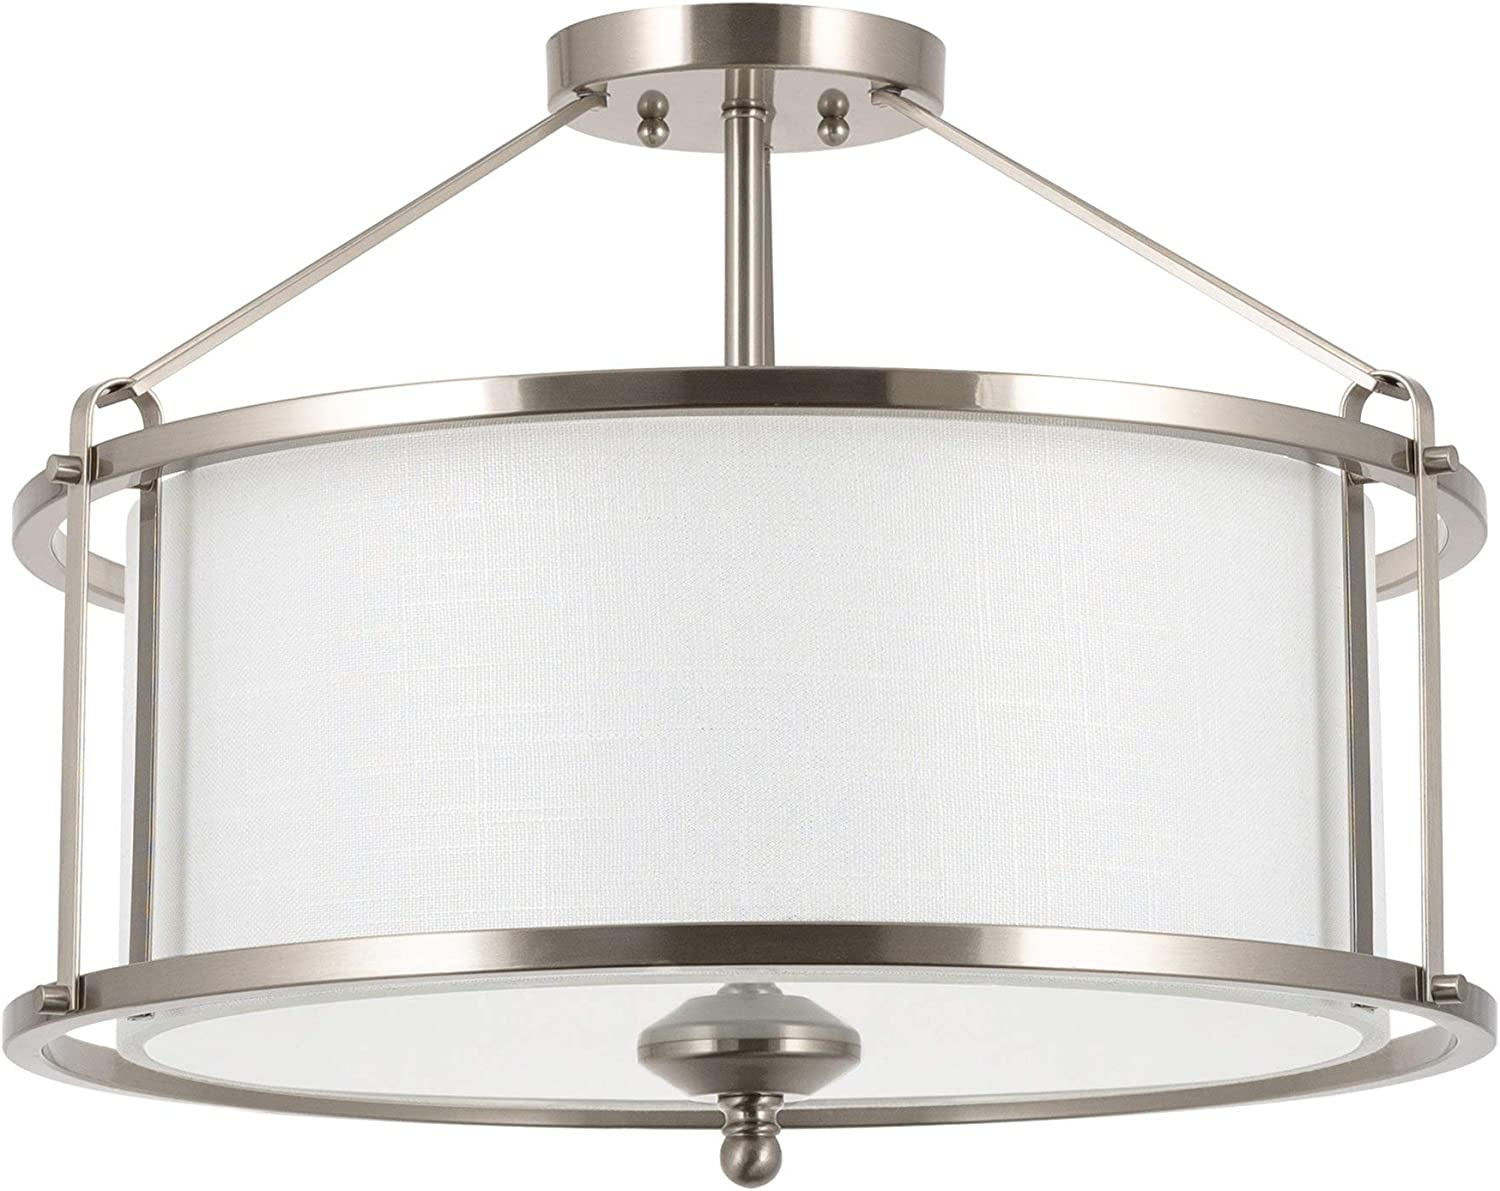 "Kira Home Maxwell 17.5"" Modern 3-Light Metal Semi Flush Mount + Tempered Glass Diffuser, White Fabric Shade, Brushed Nickel Finish"